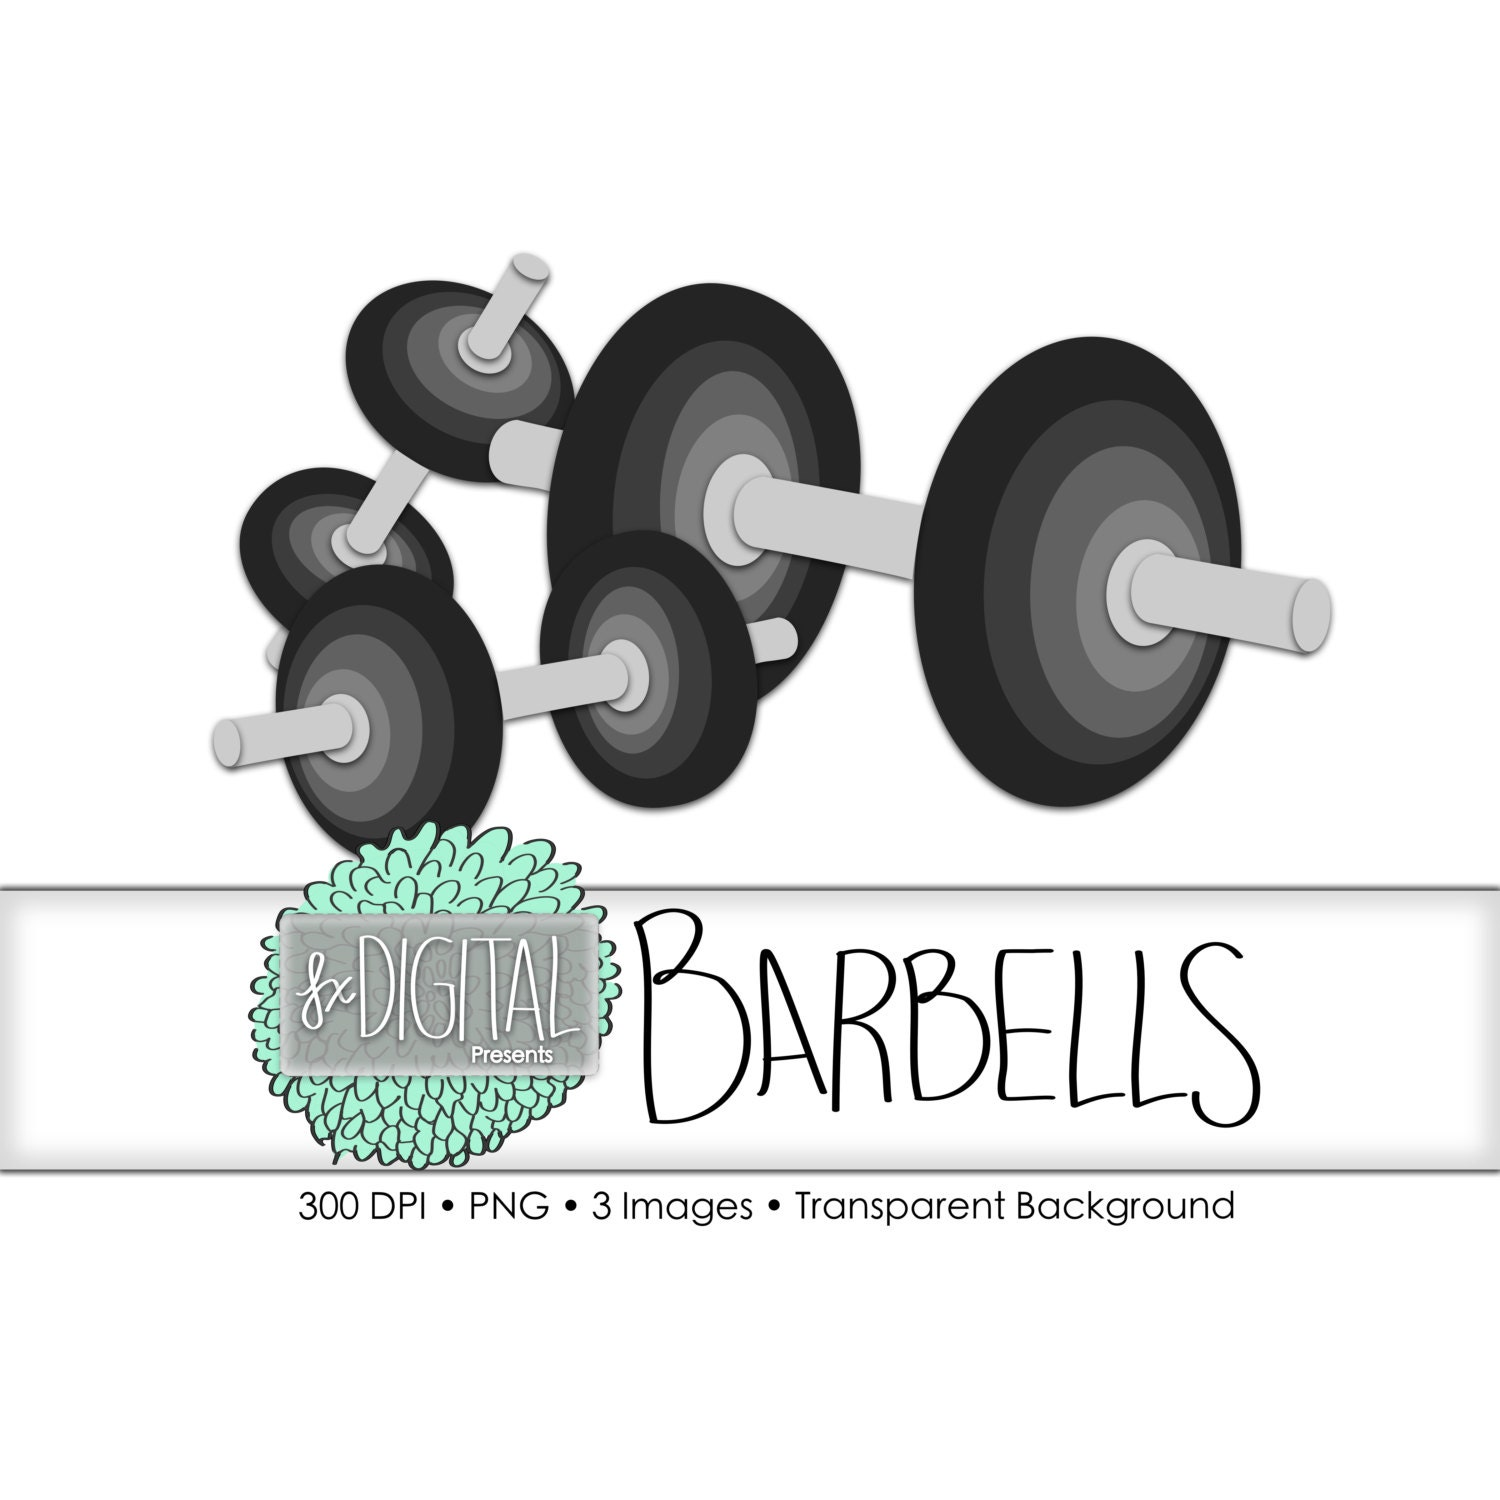 Barbell clipart barbell clip art workout clipart etsy for Barbel art